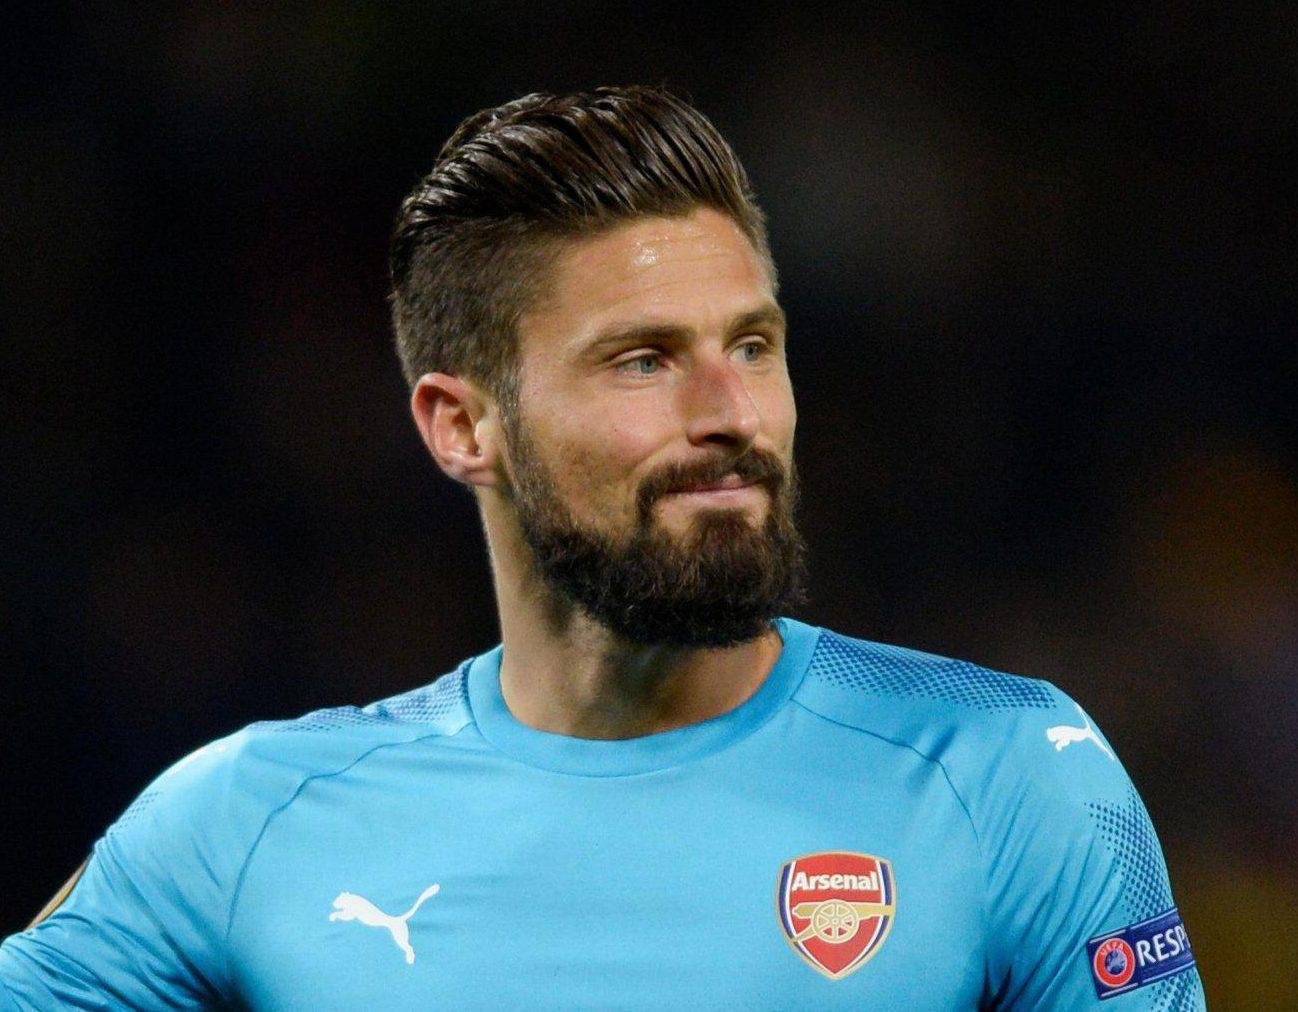 Giroud has been told he needs to move elsewhere by Didier Deschamps